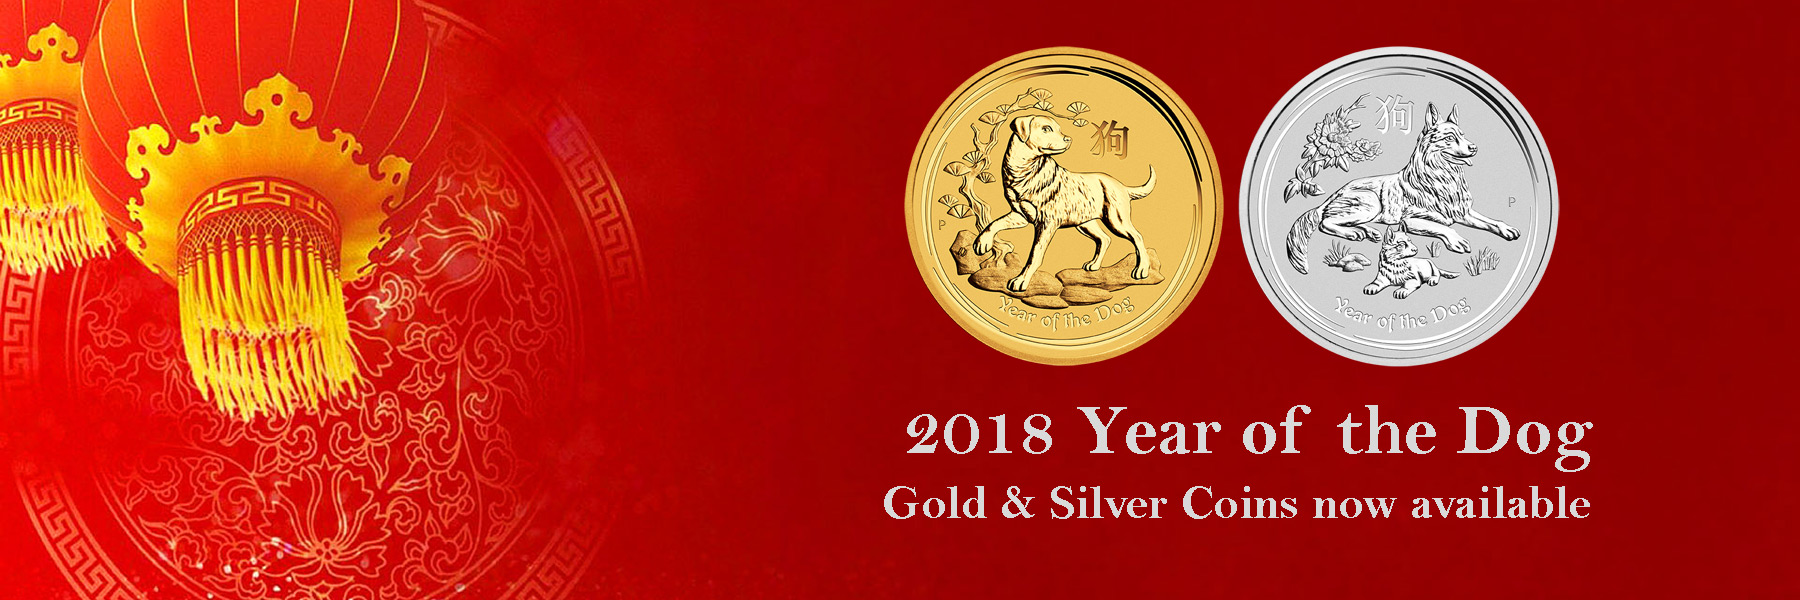 2018 Year of Dog Bullion Coins